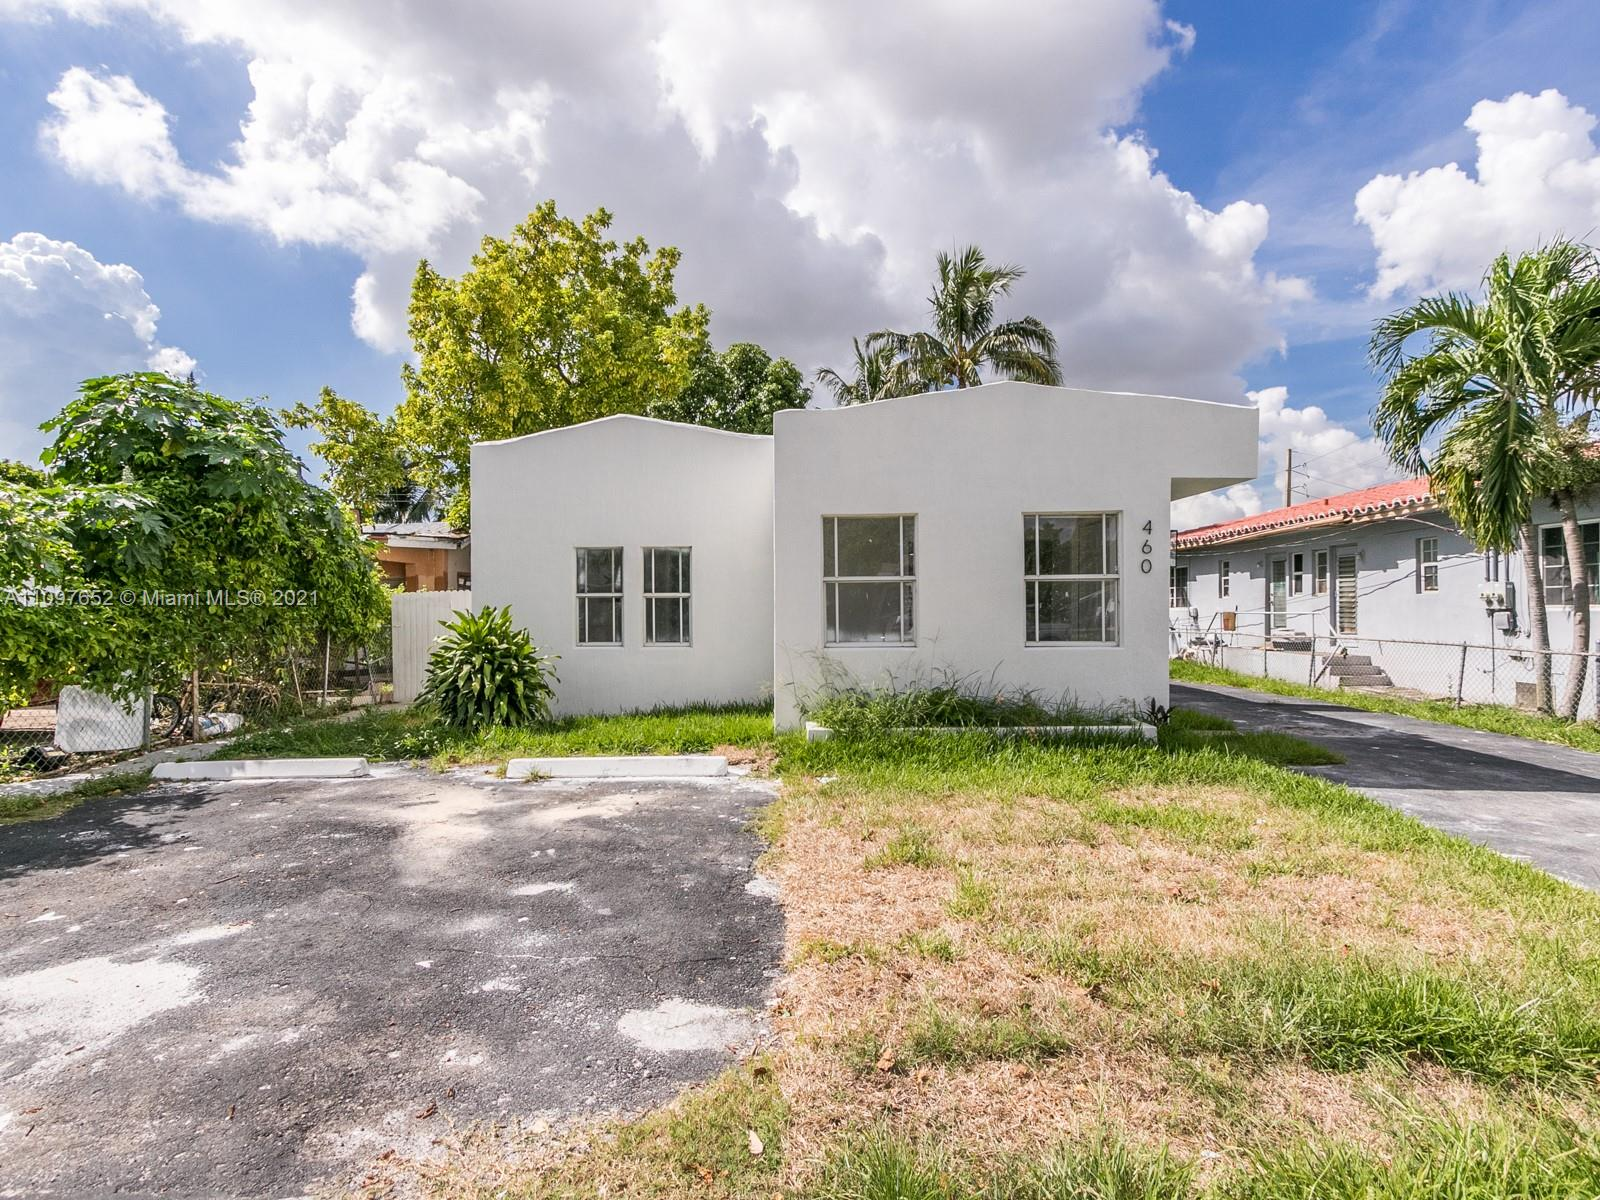 Single Family Home,For Sale,460 NW 82nd Ter, Miami, Florida 33150,Brickell,realty,broker,condos near me